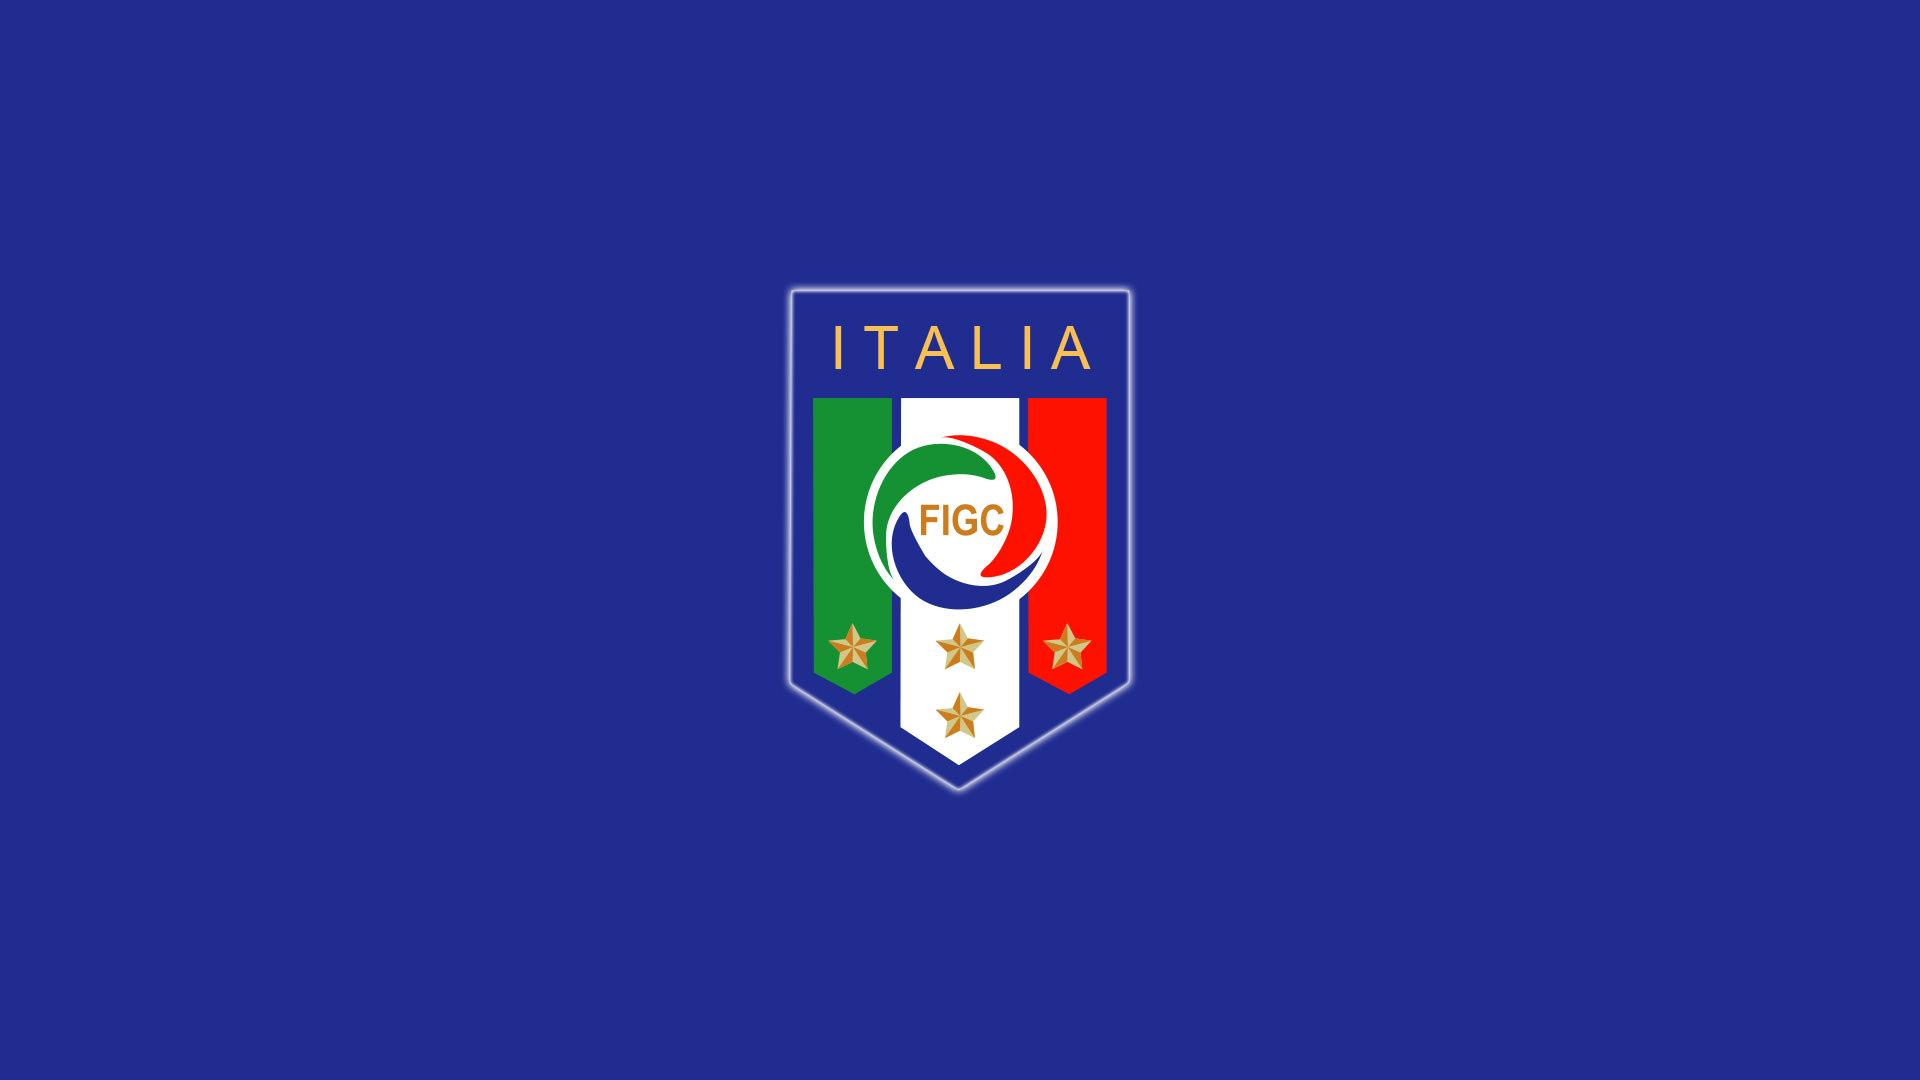 Gambar Wallpapers Logo Italia Wallpaper Cave